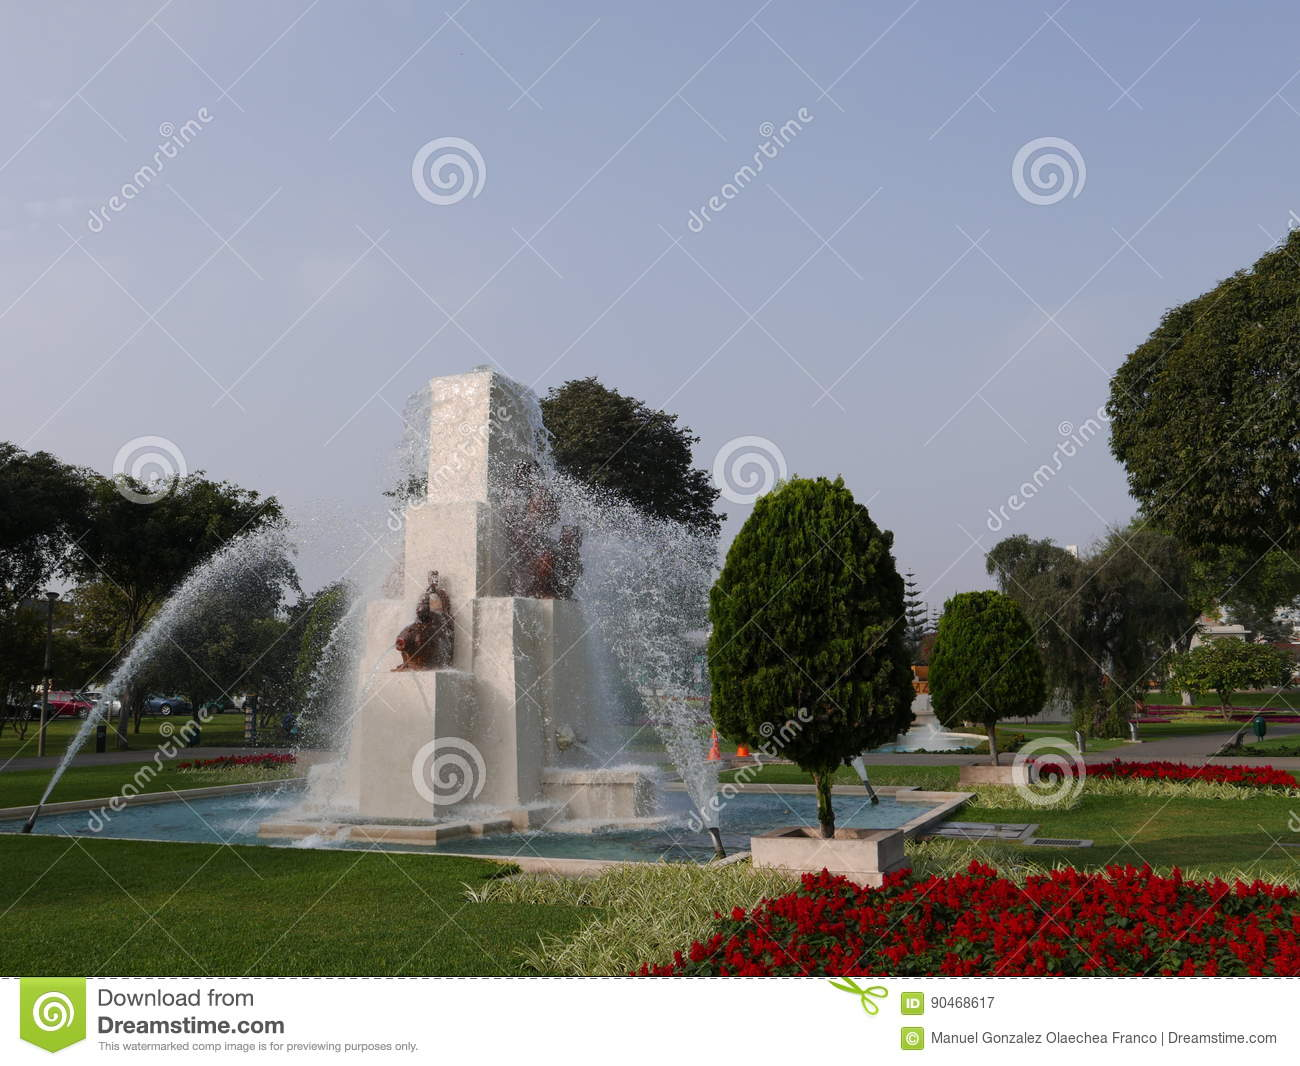 Water fountains lima - Fountain In The Magic Water Circuit In Lima